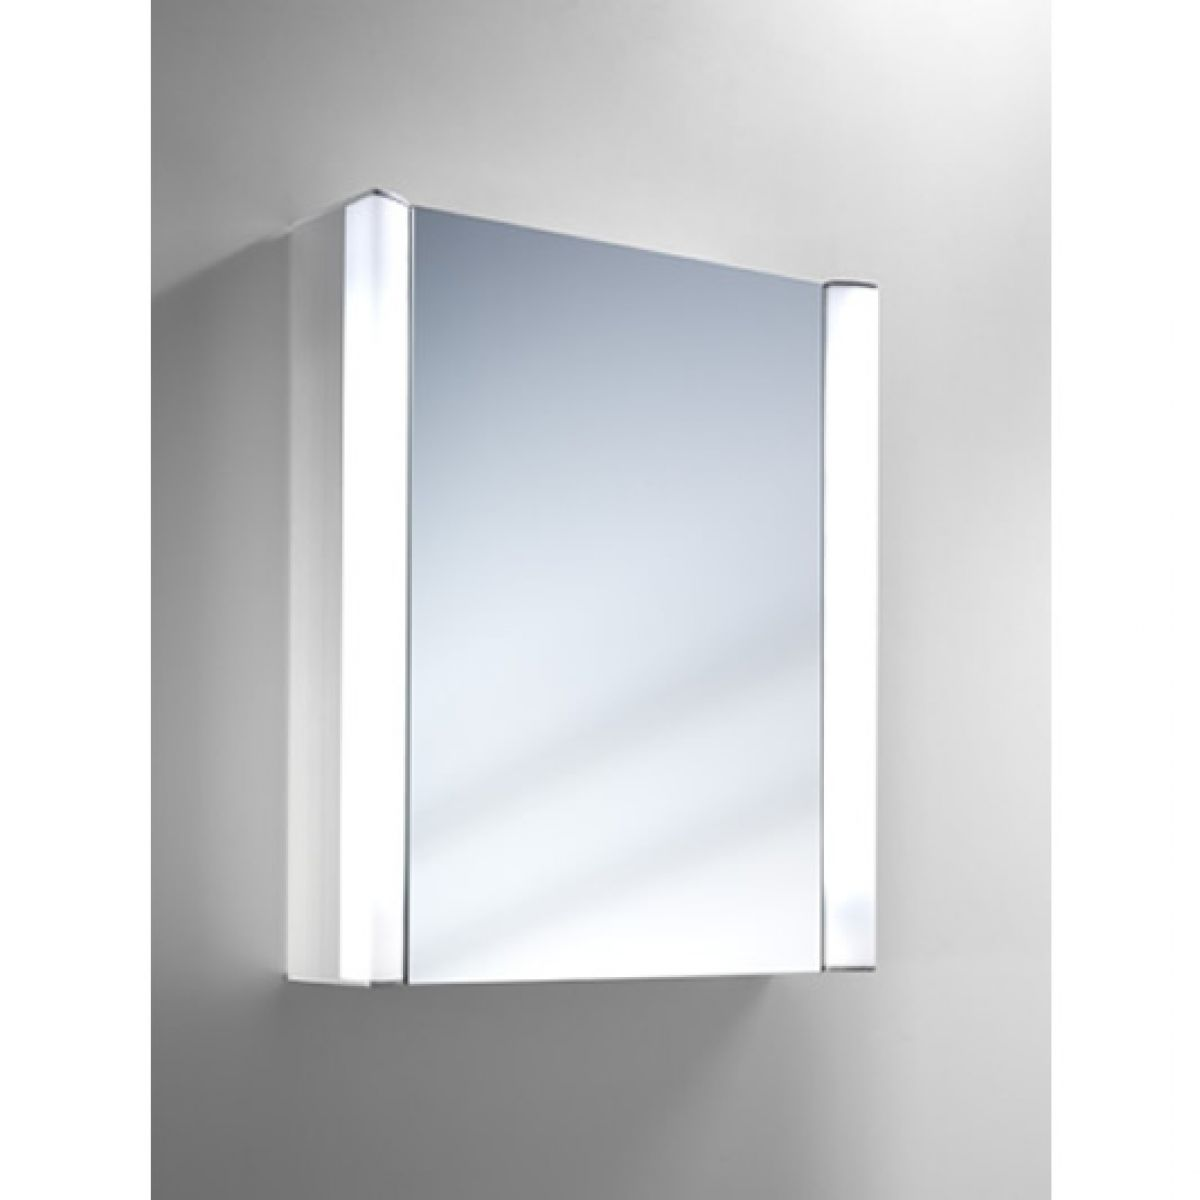 Schneider Moanaline Illuminated Bathroom Cabinet : UK Bathrooms